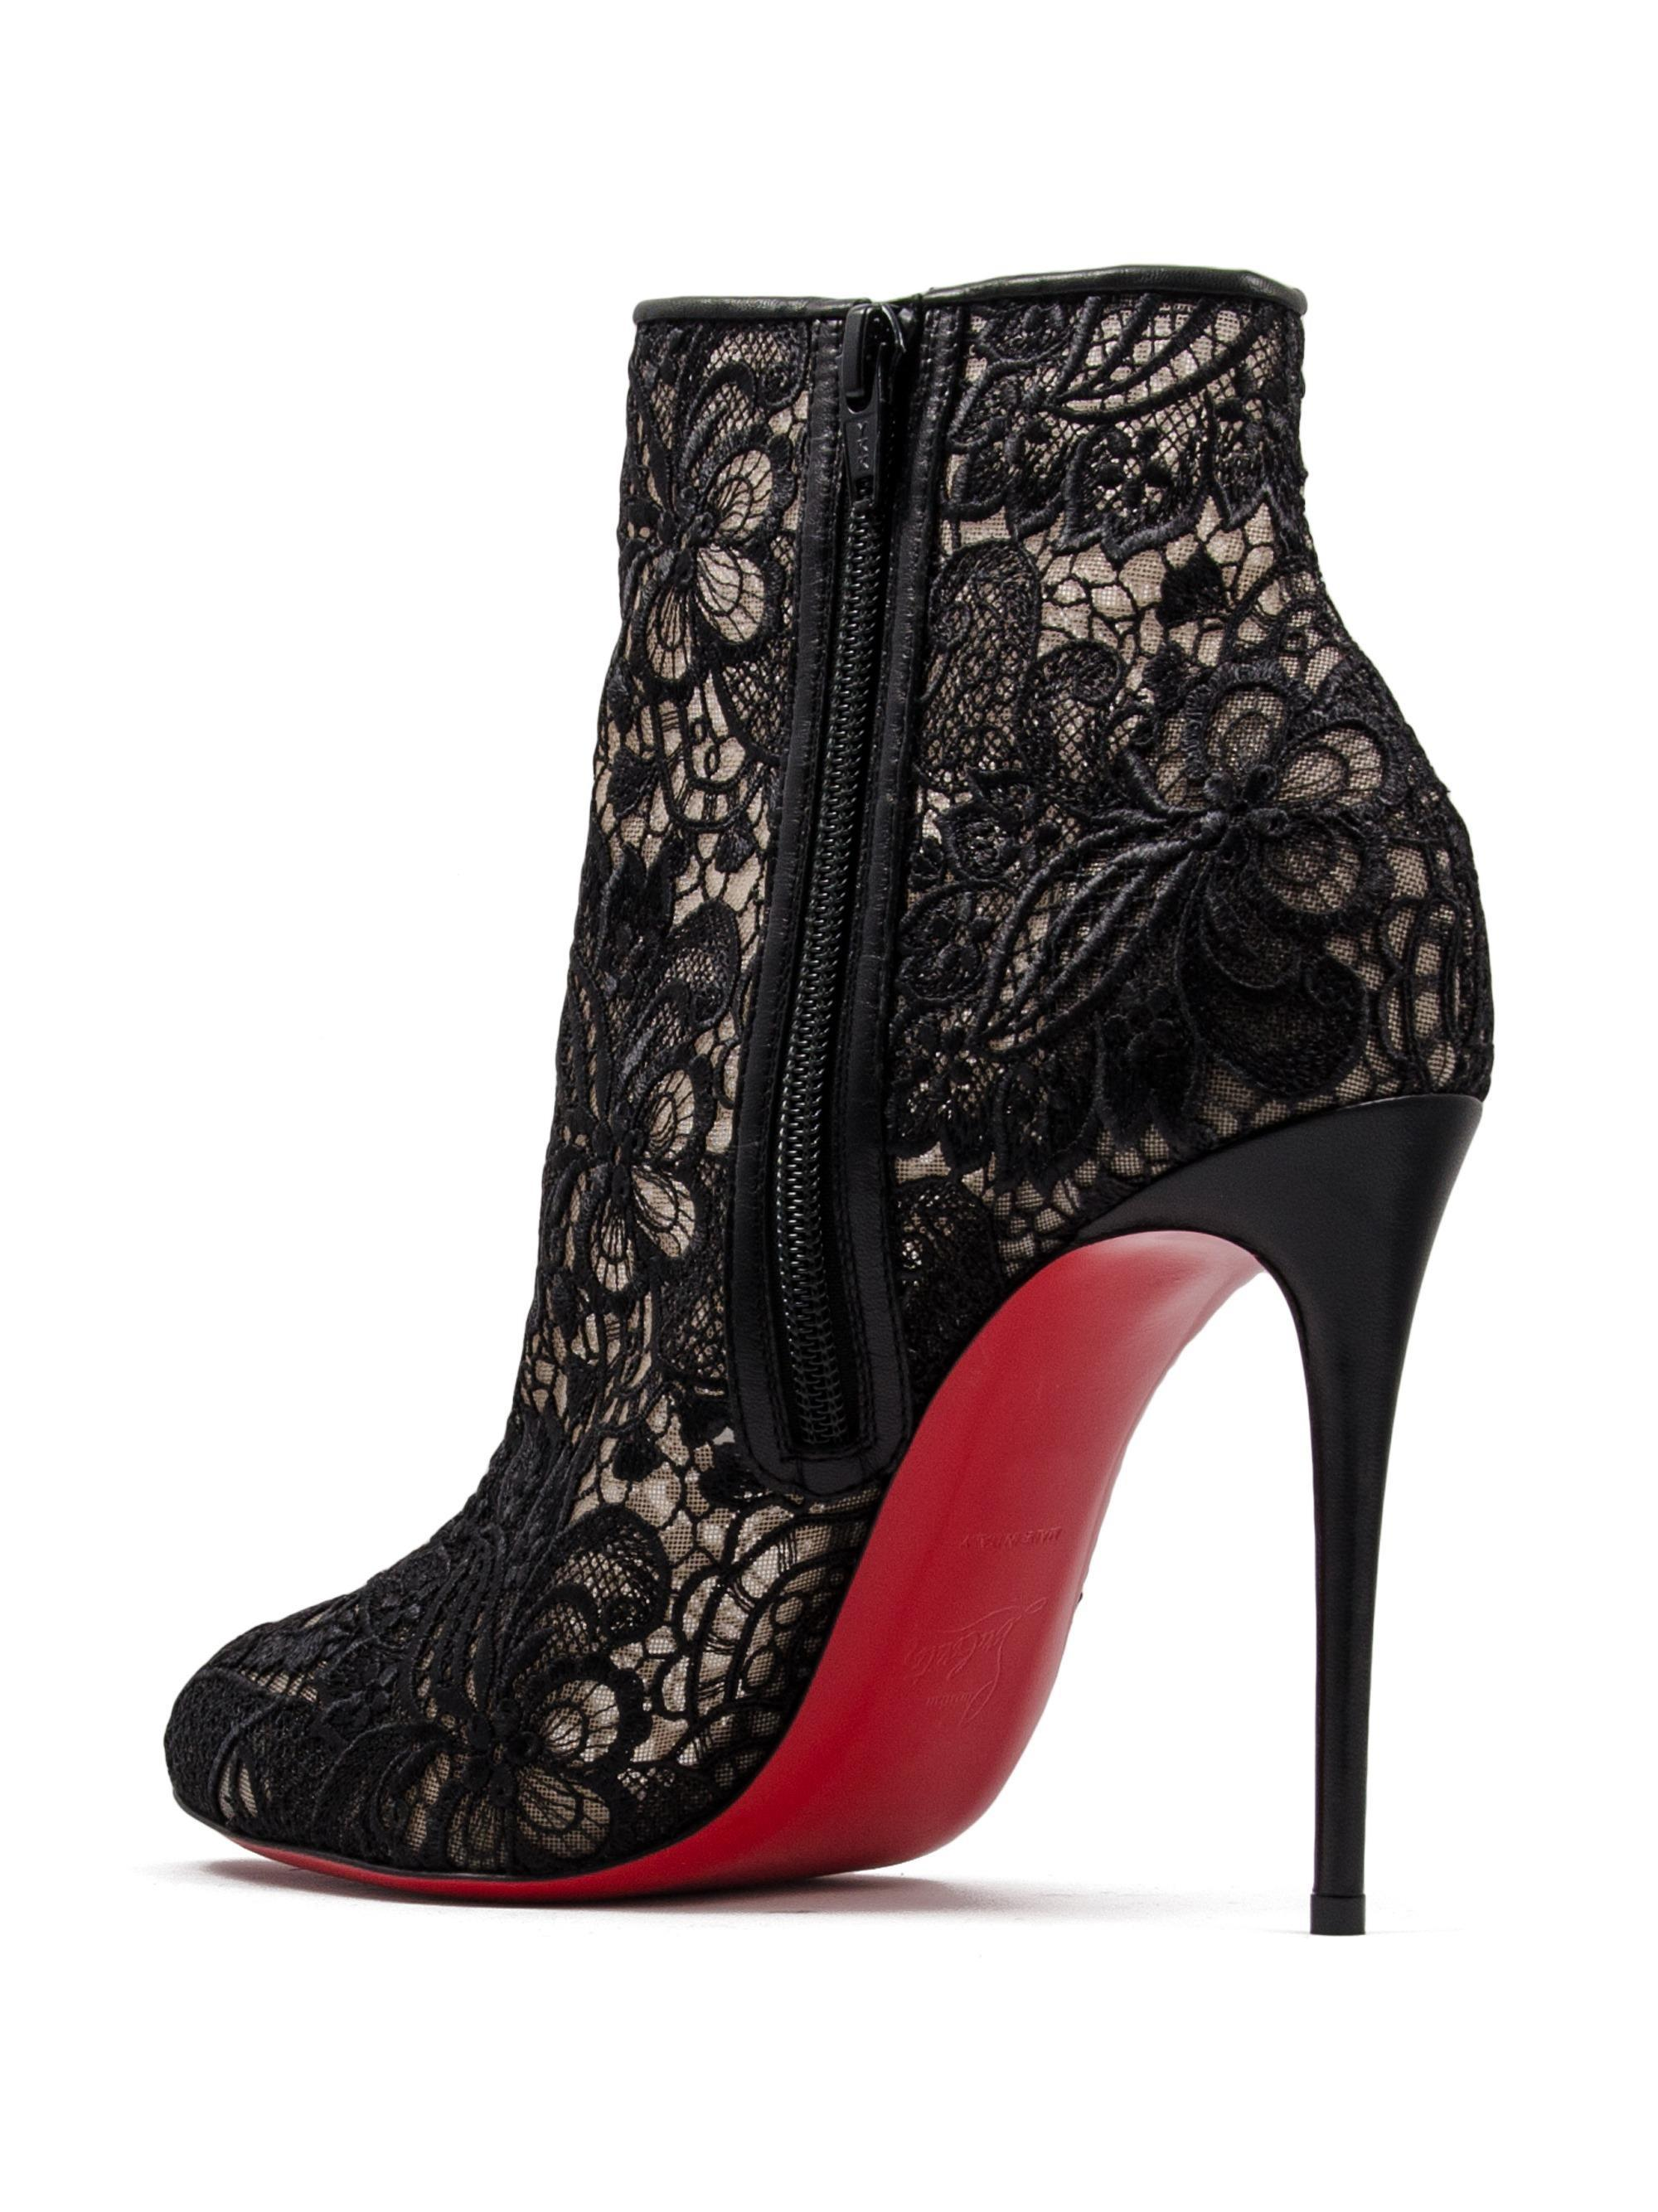 Miss Tennis 100 Guipure Lace Ankle Boots - Black Christian Louboutin w5CSK8A